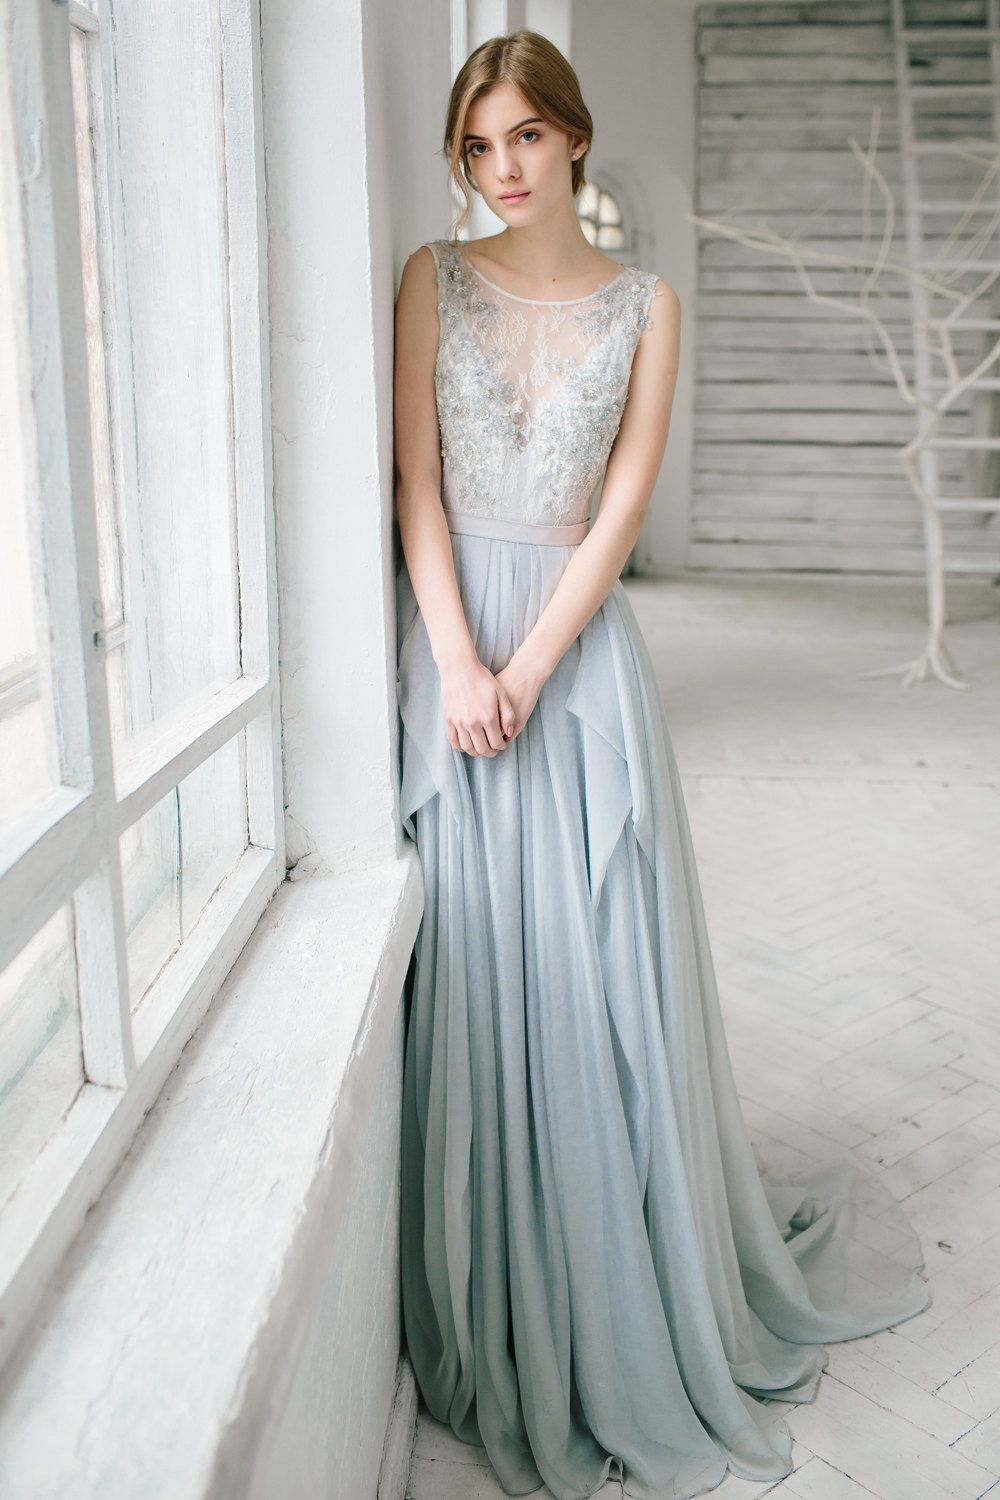 Silver grey wedding dress // Lobelia | Vestidos de novia, Gris y Plata